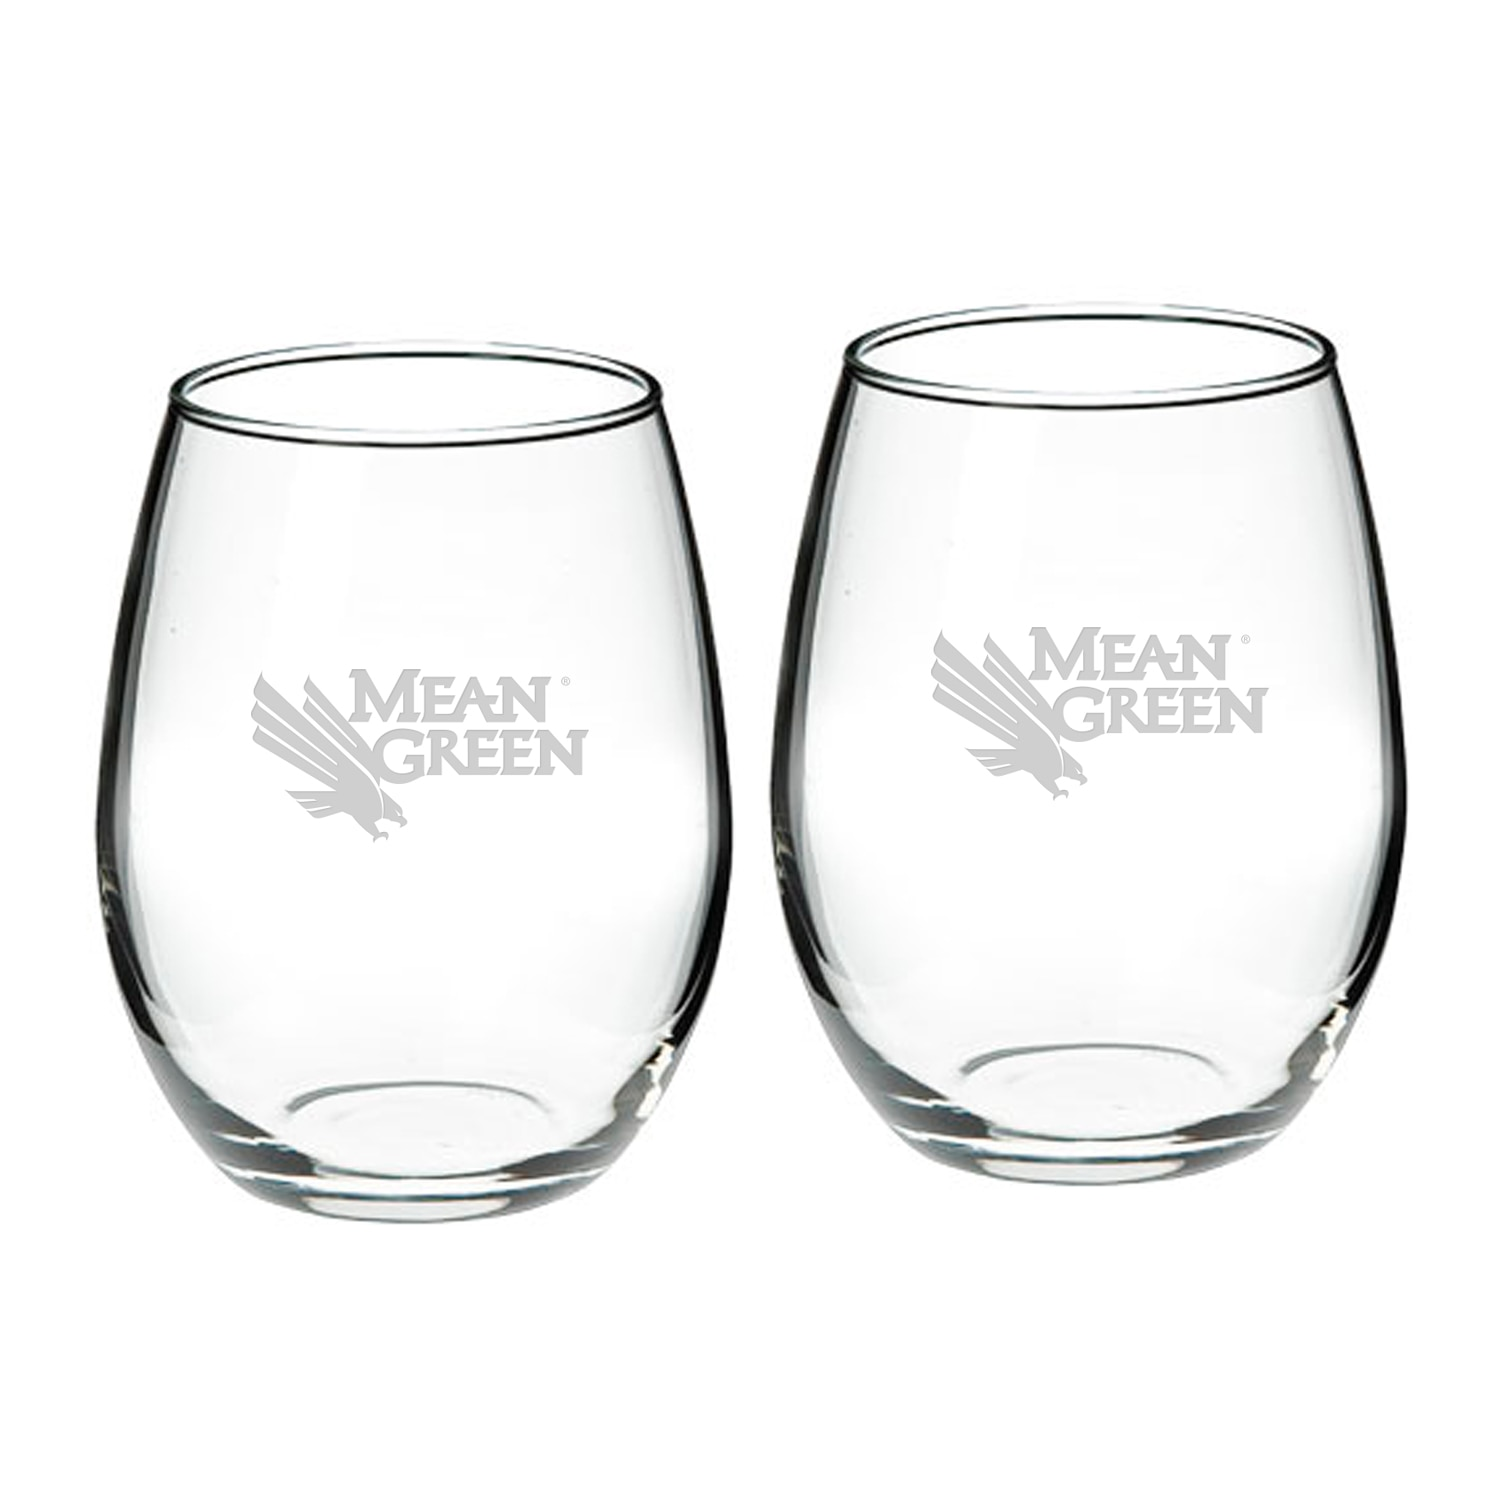 University of North Texas Stemless Wine Glass 2-Pack